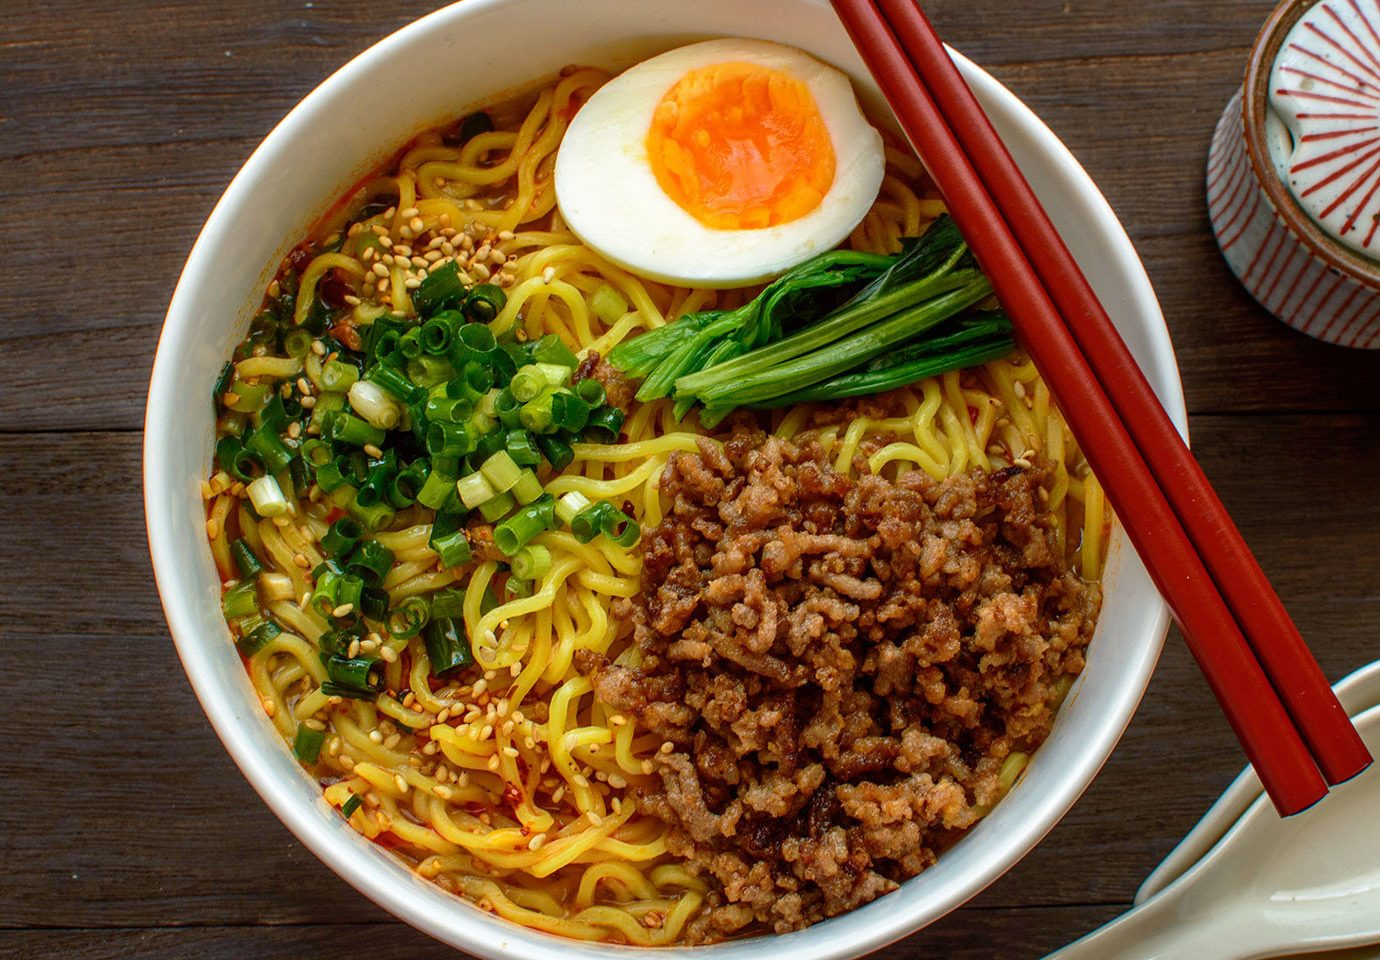 Food + Drink Southeast Asia Trip Ideas food table dish plate cuisine asian food rice noodle fried rice chinese food southeast asian food ramen thai food steamed rice recipe nasi goreng staple food vegetable meal